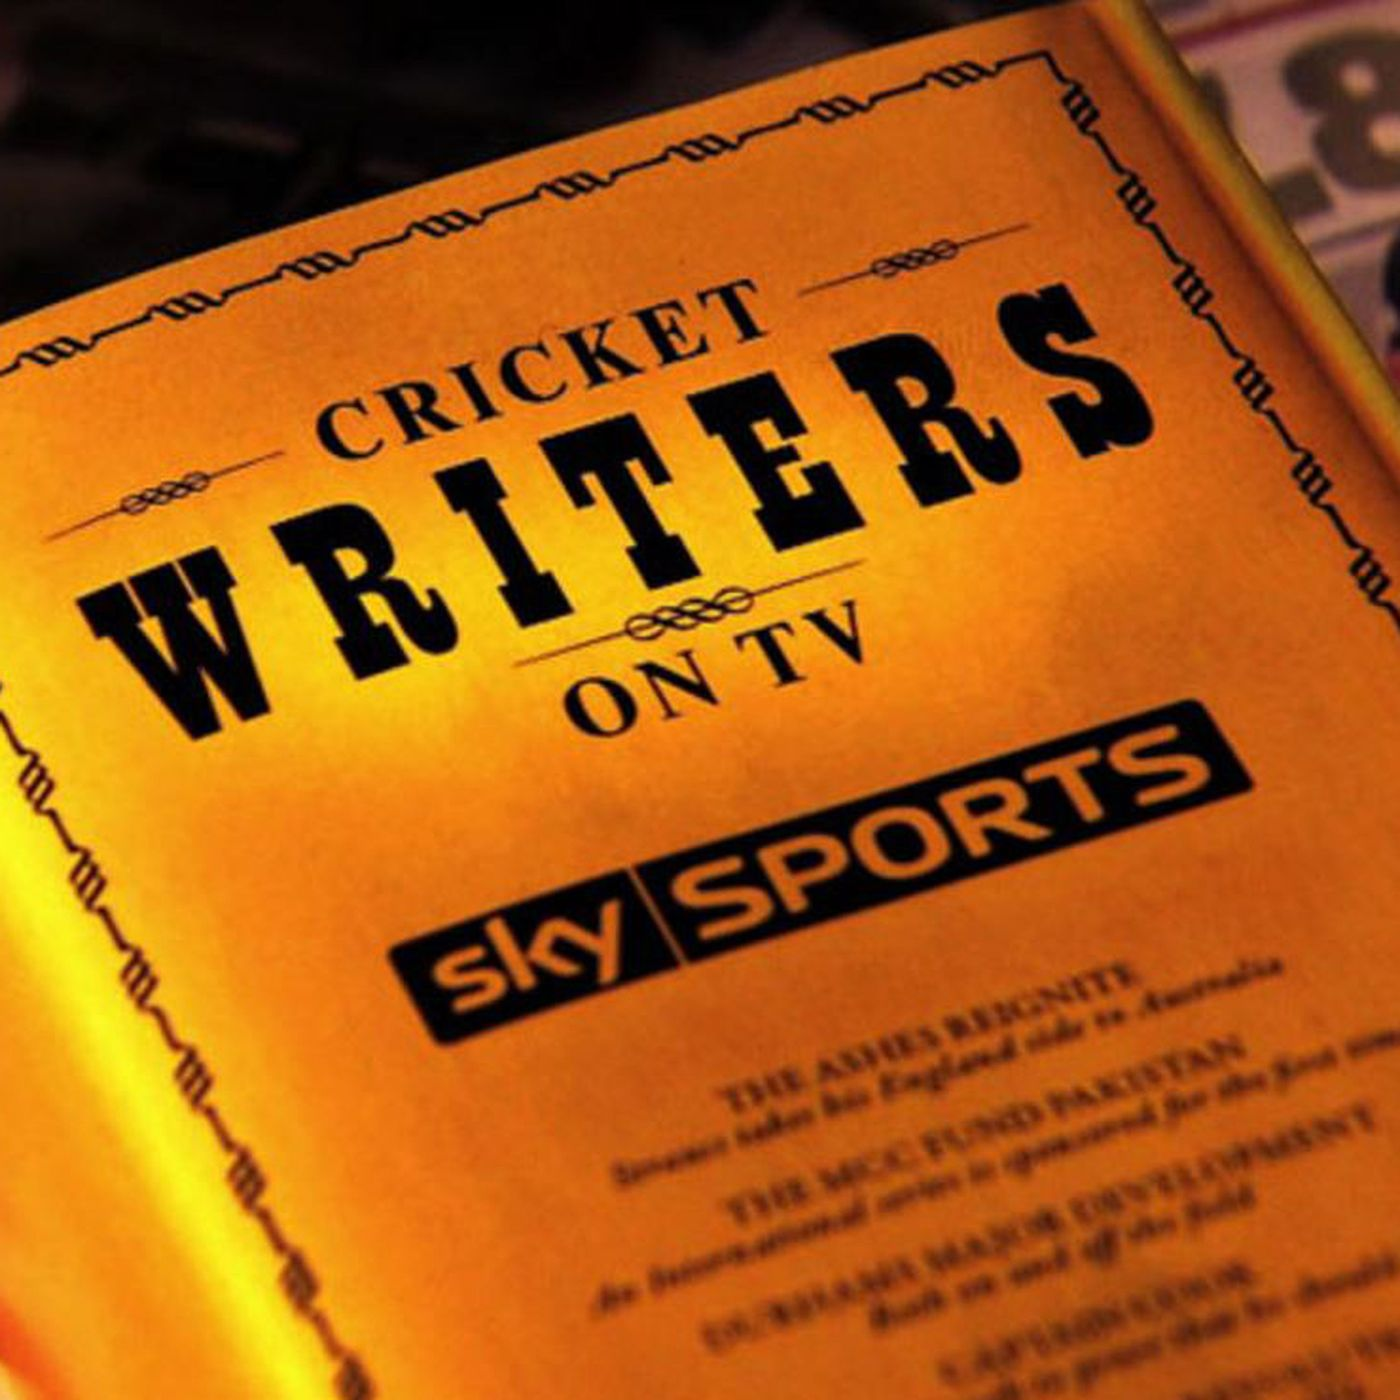 Cricket Writers Podcast - 4th June